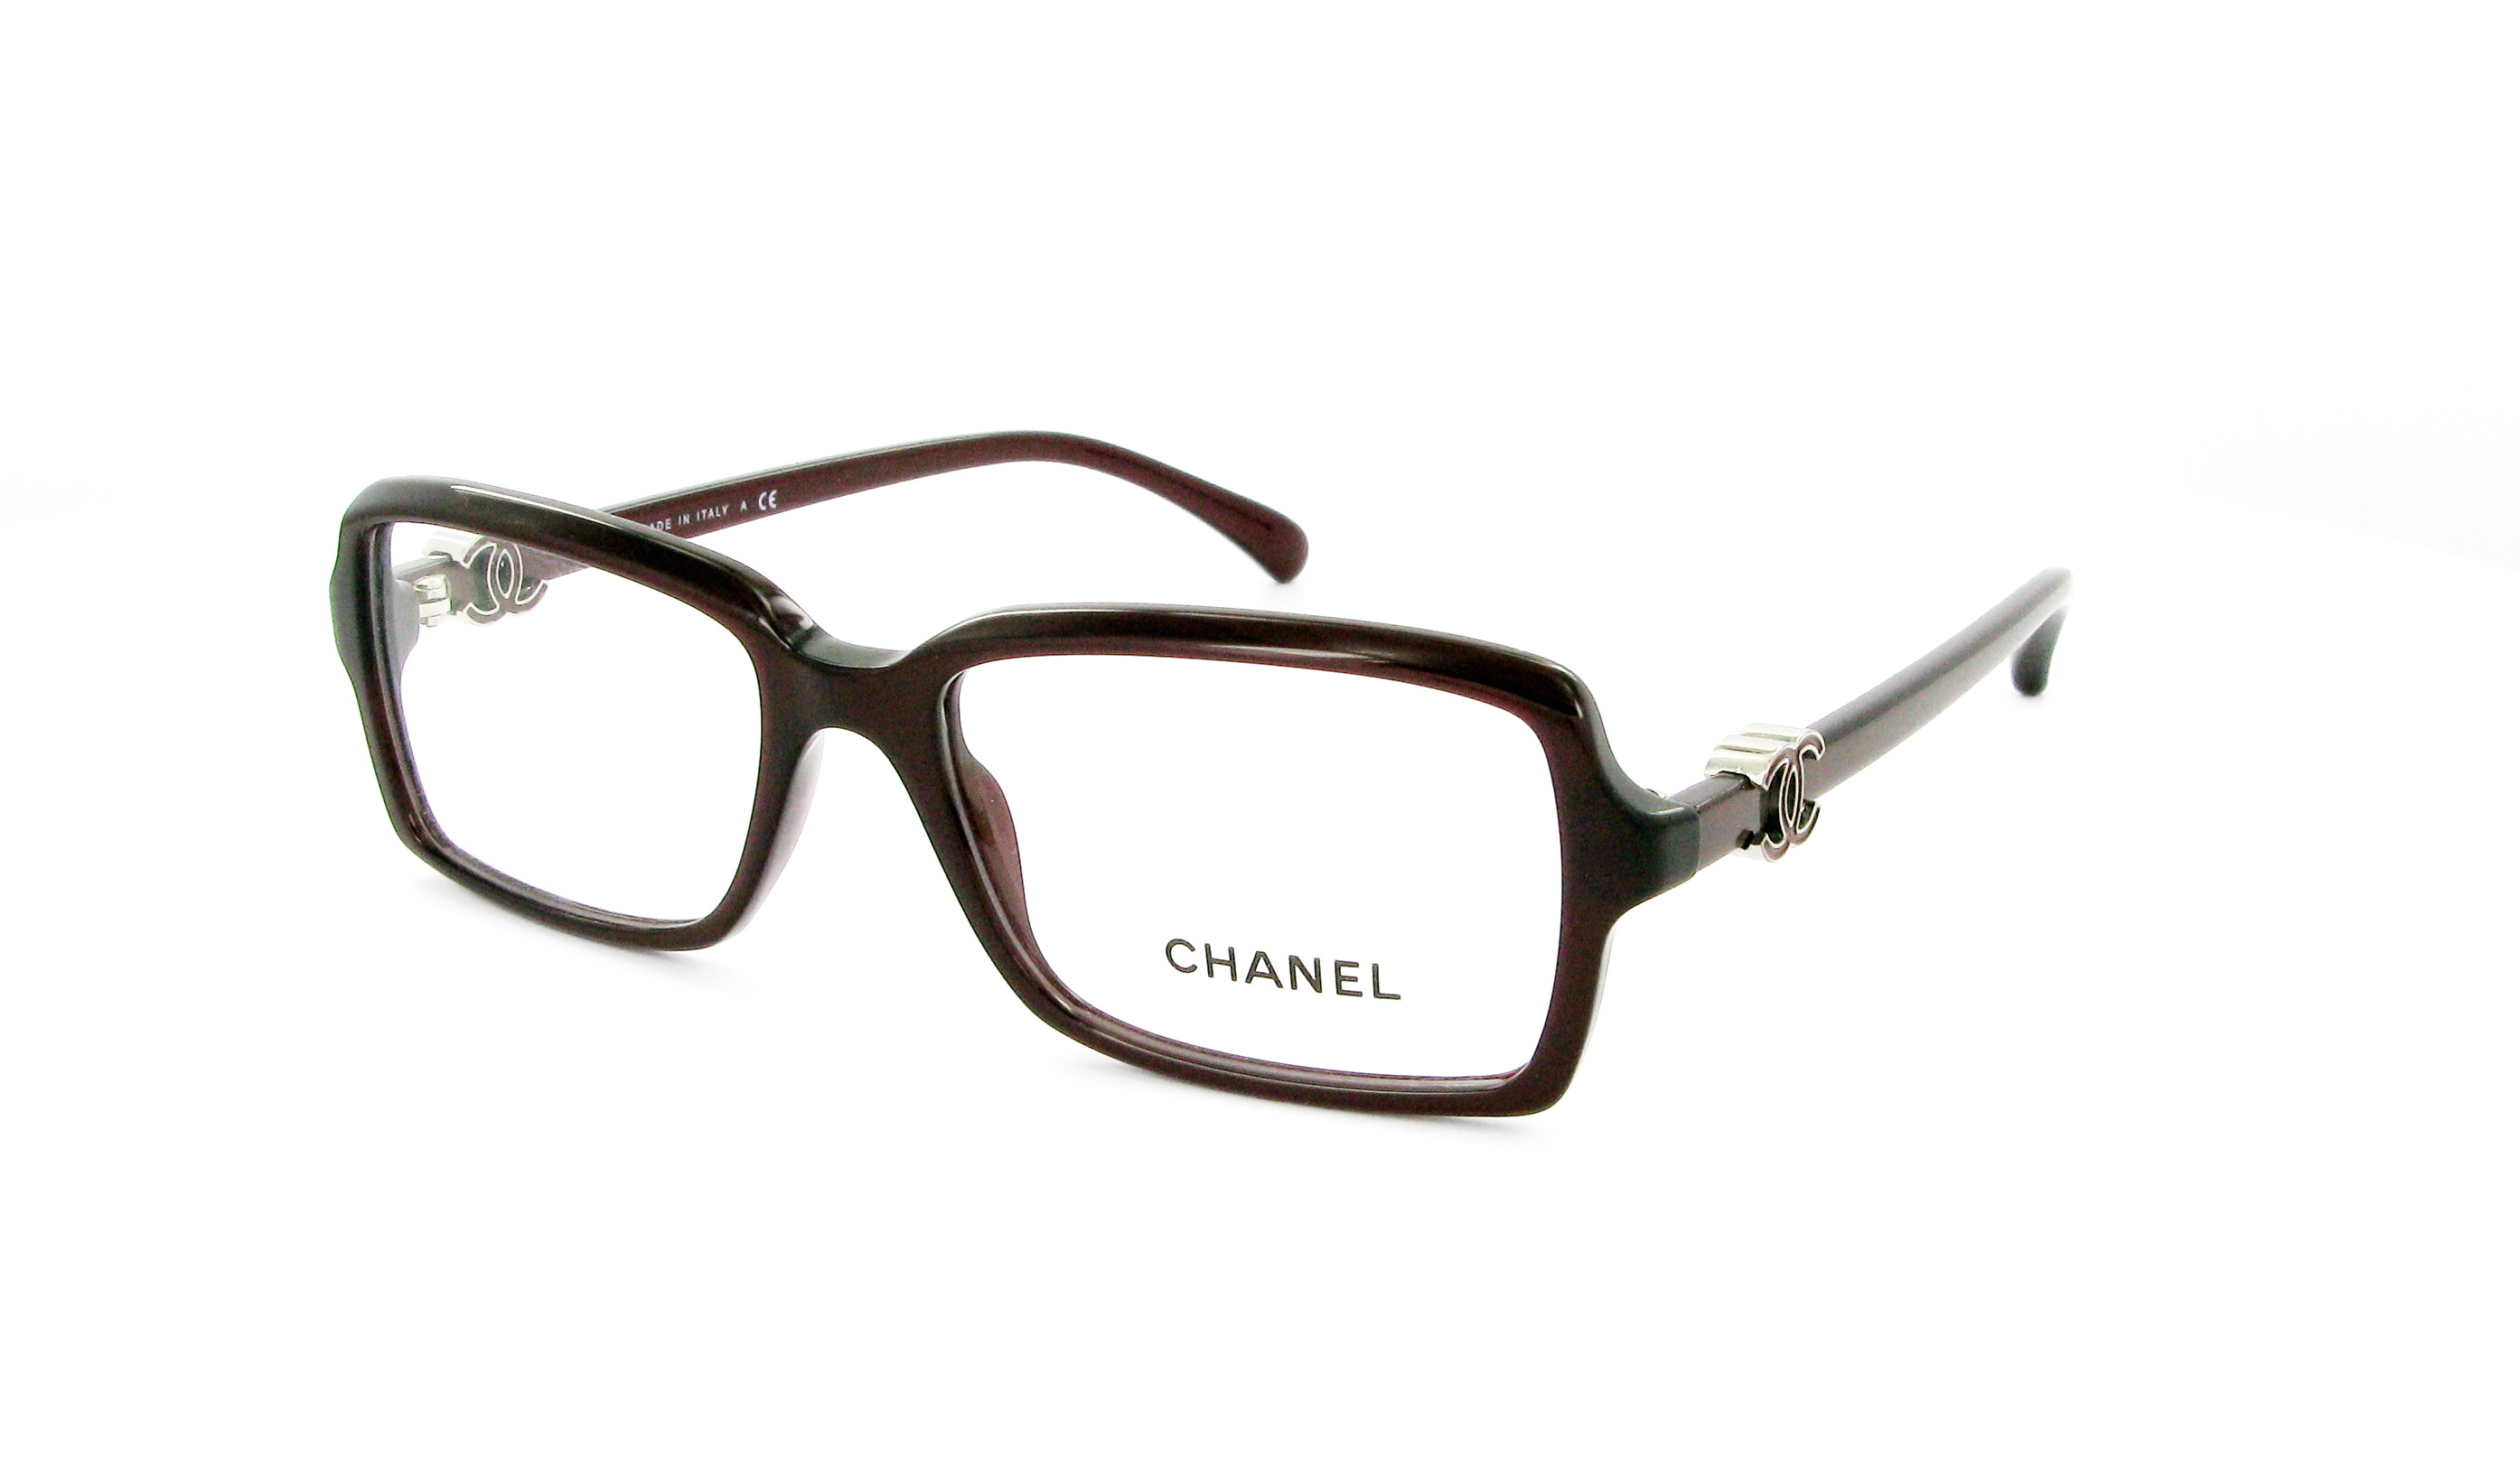 Eyeglasses Frame Chanel : Eyeglasses 0mmx0mm 0?